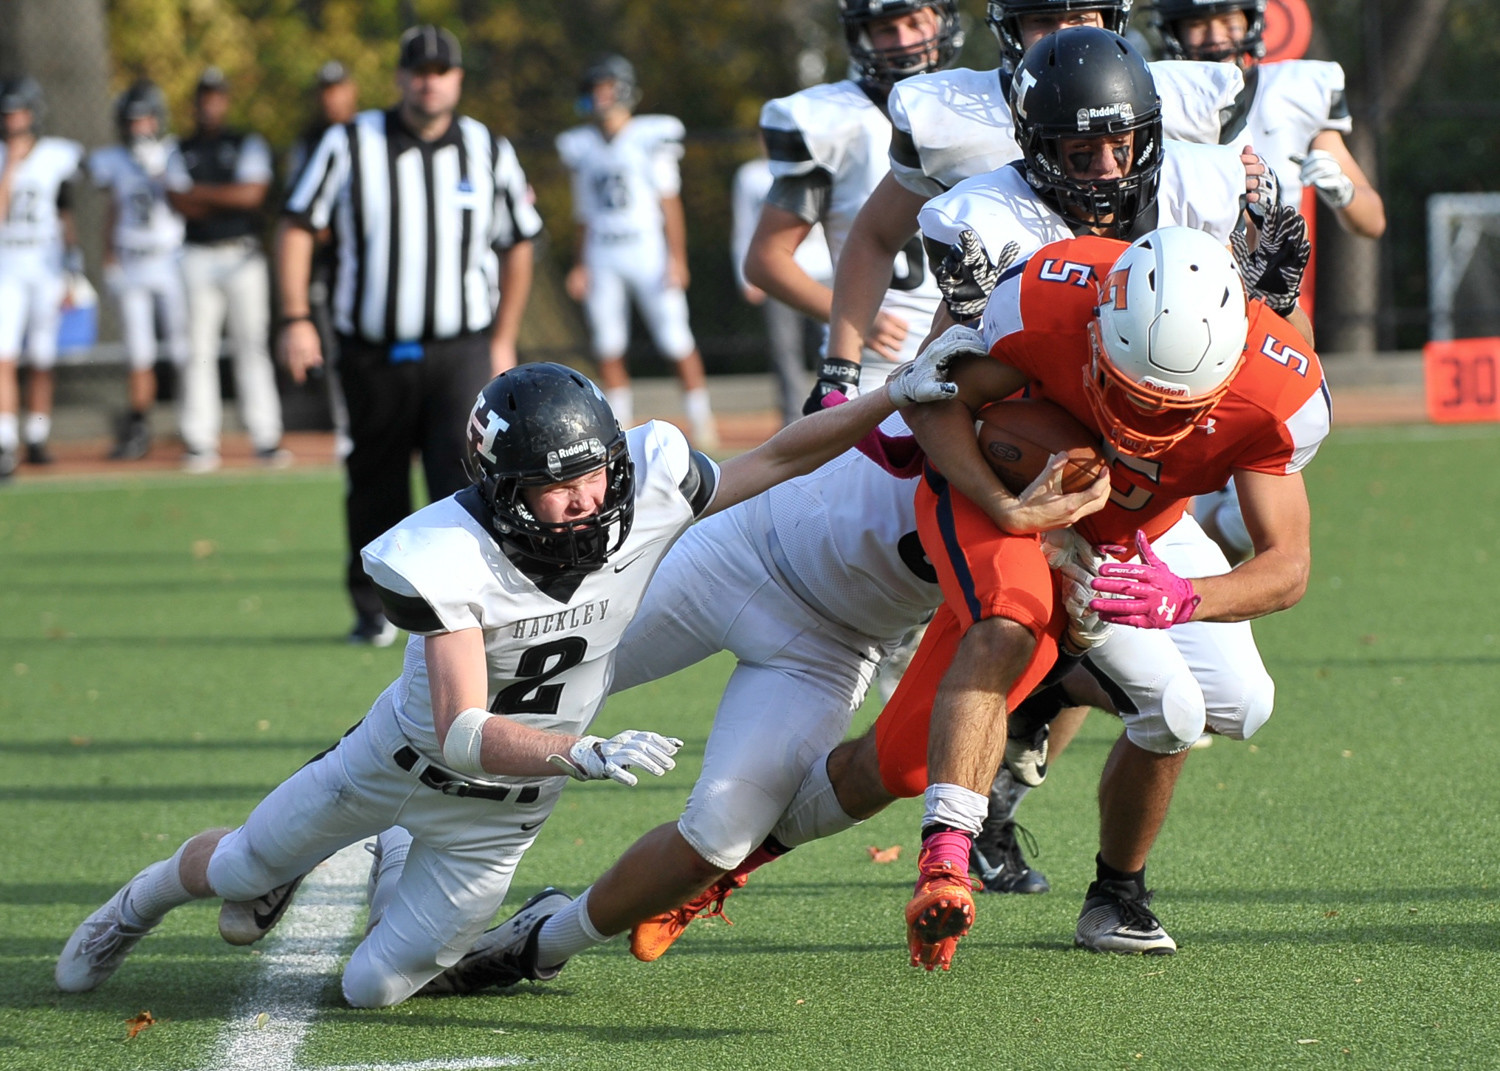 Fieldston's Alexander Thorpe takes two defenders along for the ride during a run in last Saturday's division championship game against Hackley.